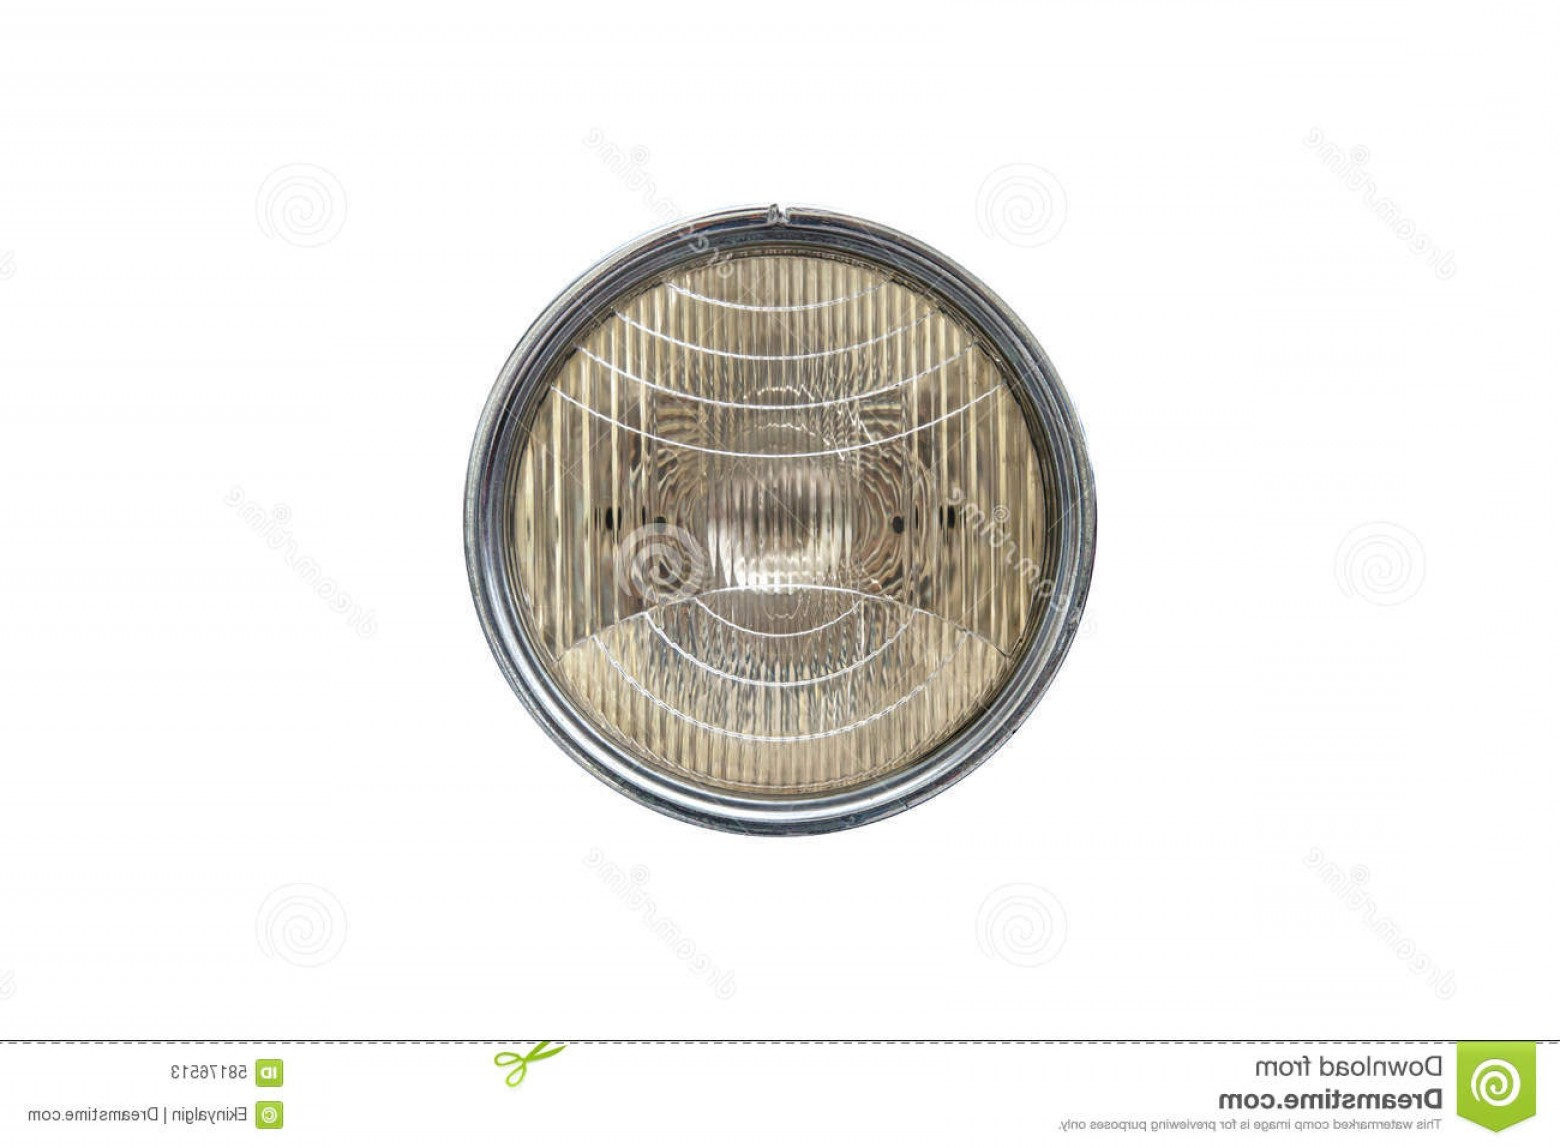 Vector Round Headlight: Stock Photo Round Car Headlight Close Up Front View Isolated White Background Image